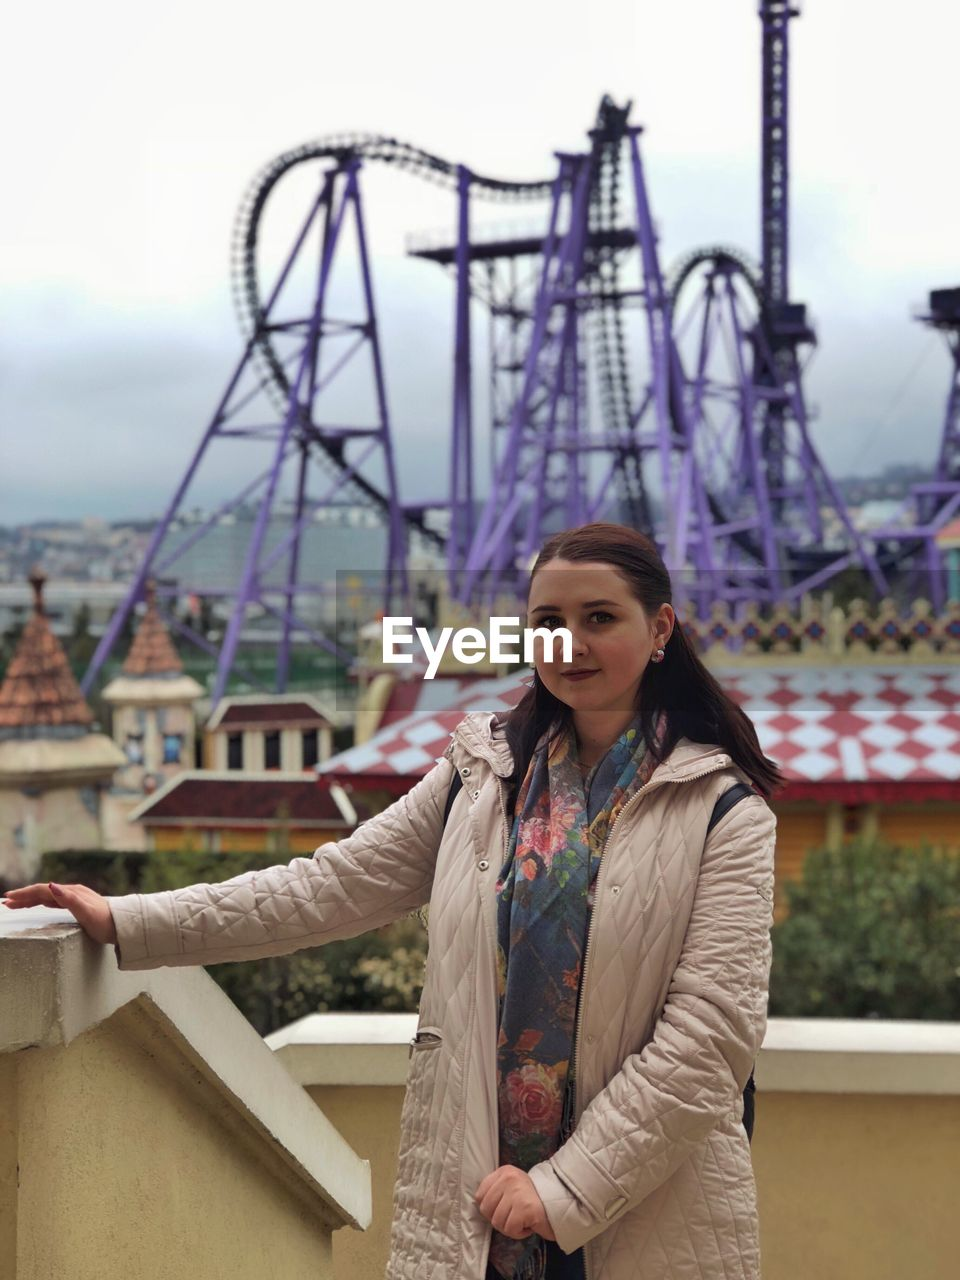 Portrait Of Woman Standing Against Rollercoaster In City